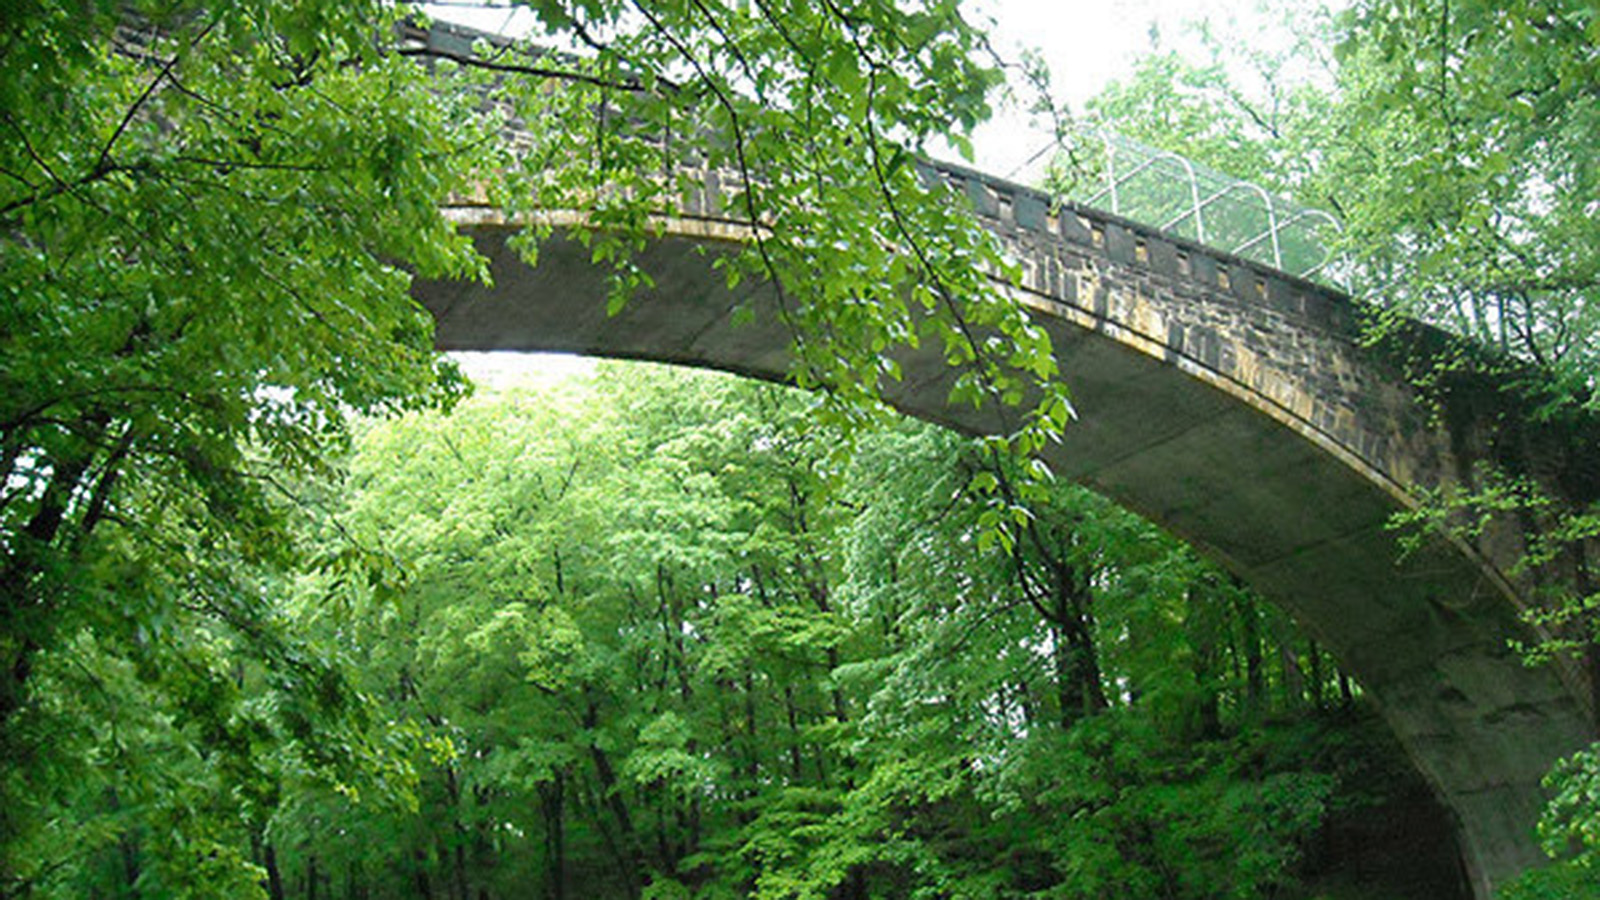 OH_Cleveland_ForestHillPark_02_NathanPaige_2012_Signature.jpg